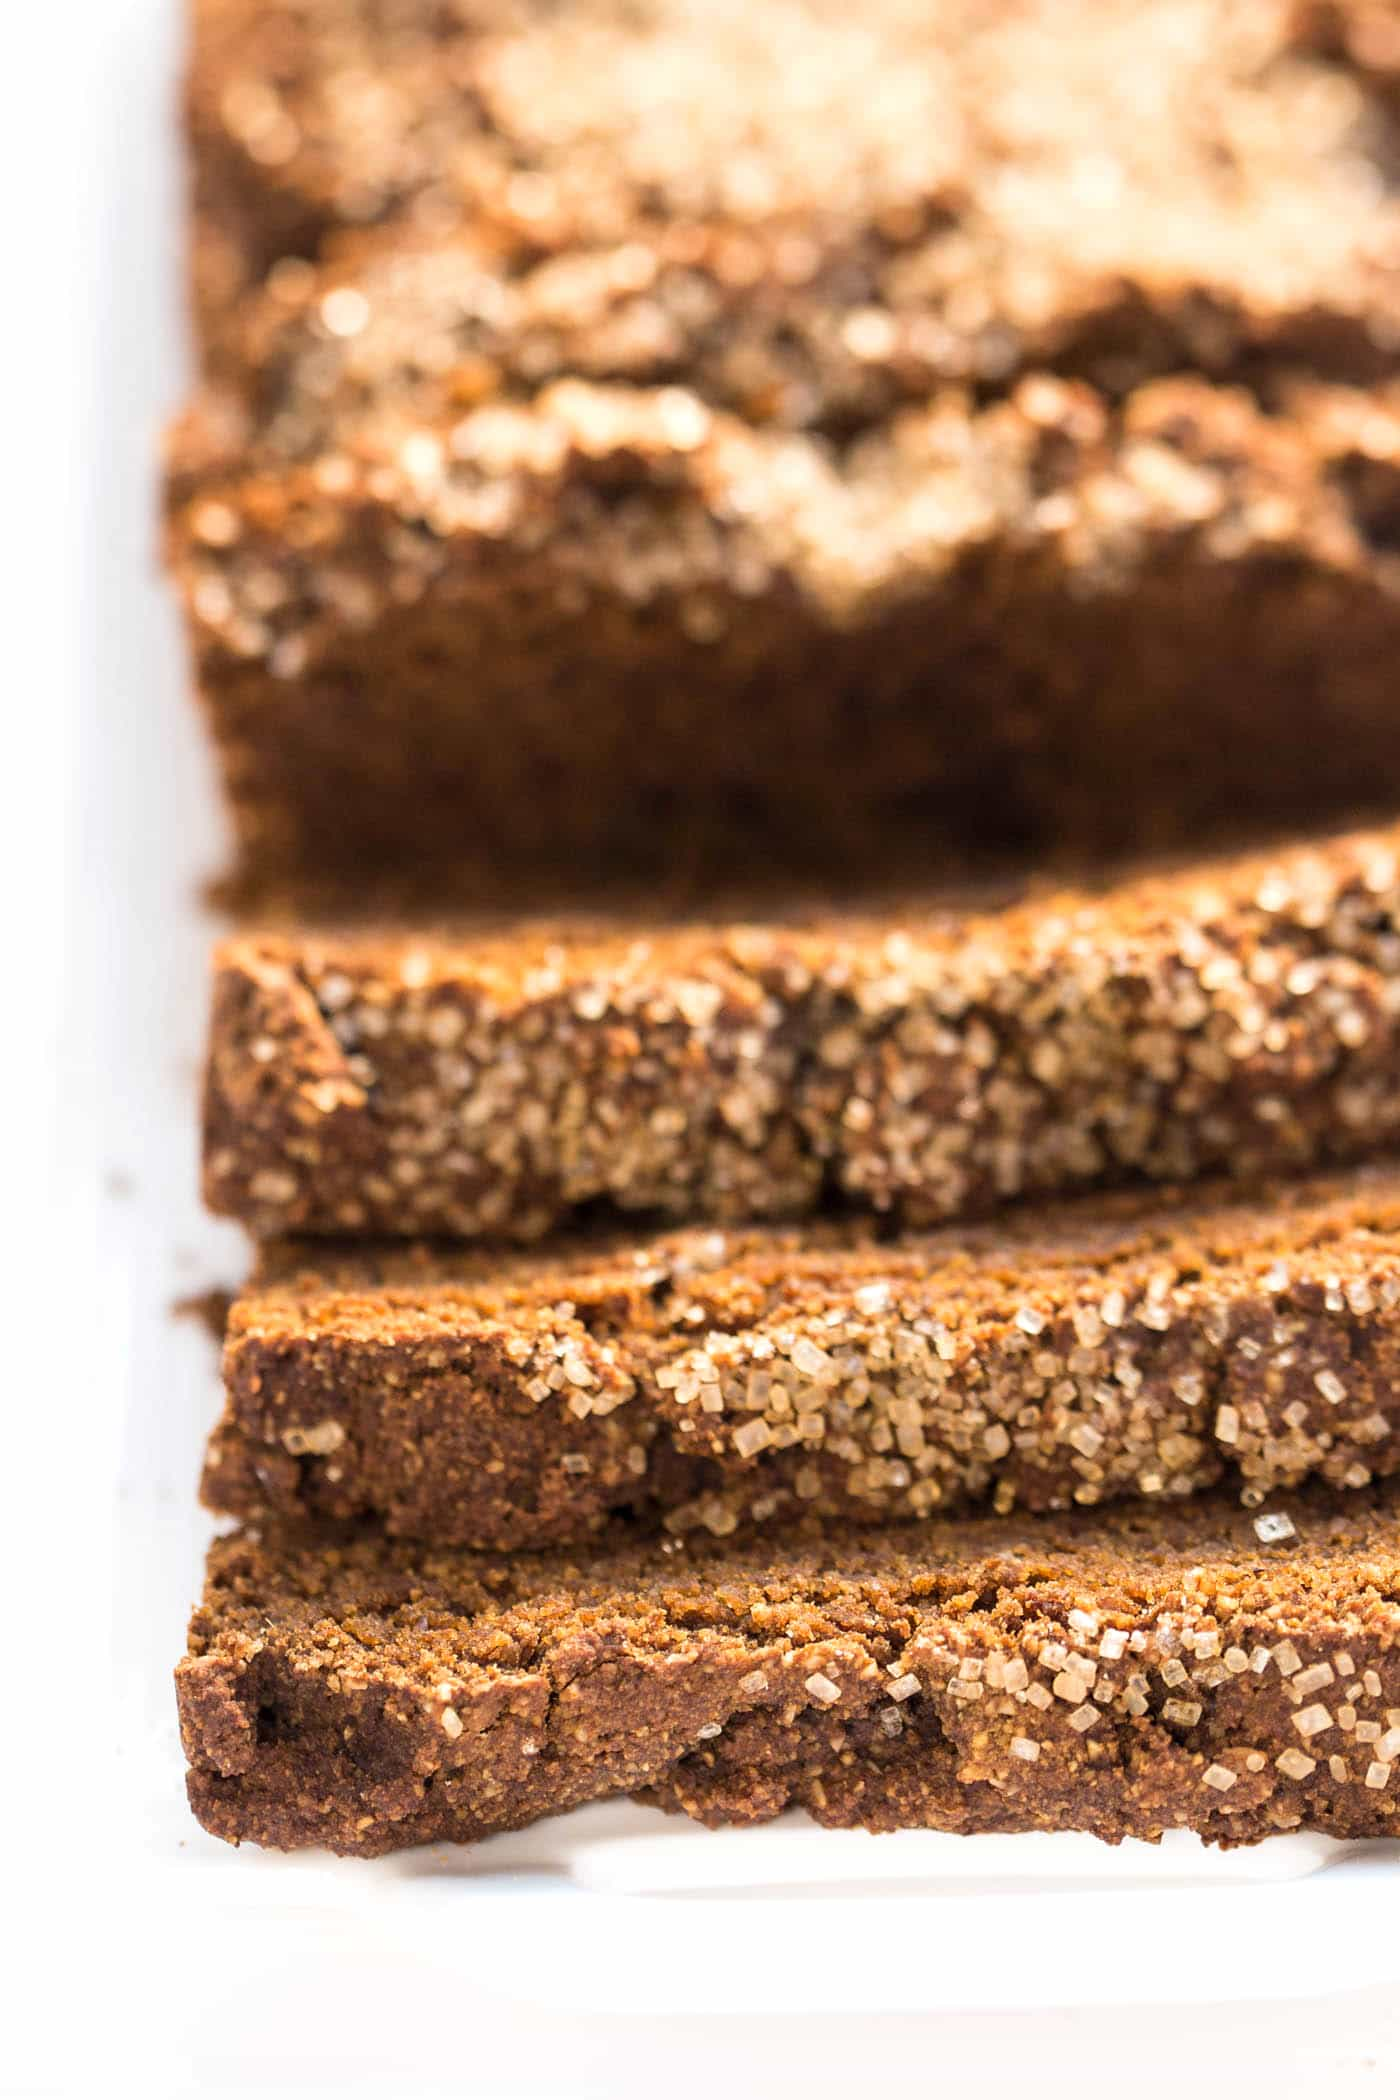 This AMAZING vegan gingerbread loaf is made with almond & quinoa flour and makes for the perfect healthy holiday treat!